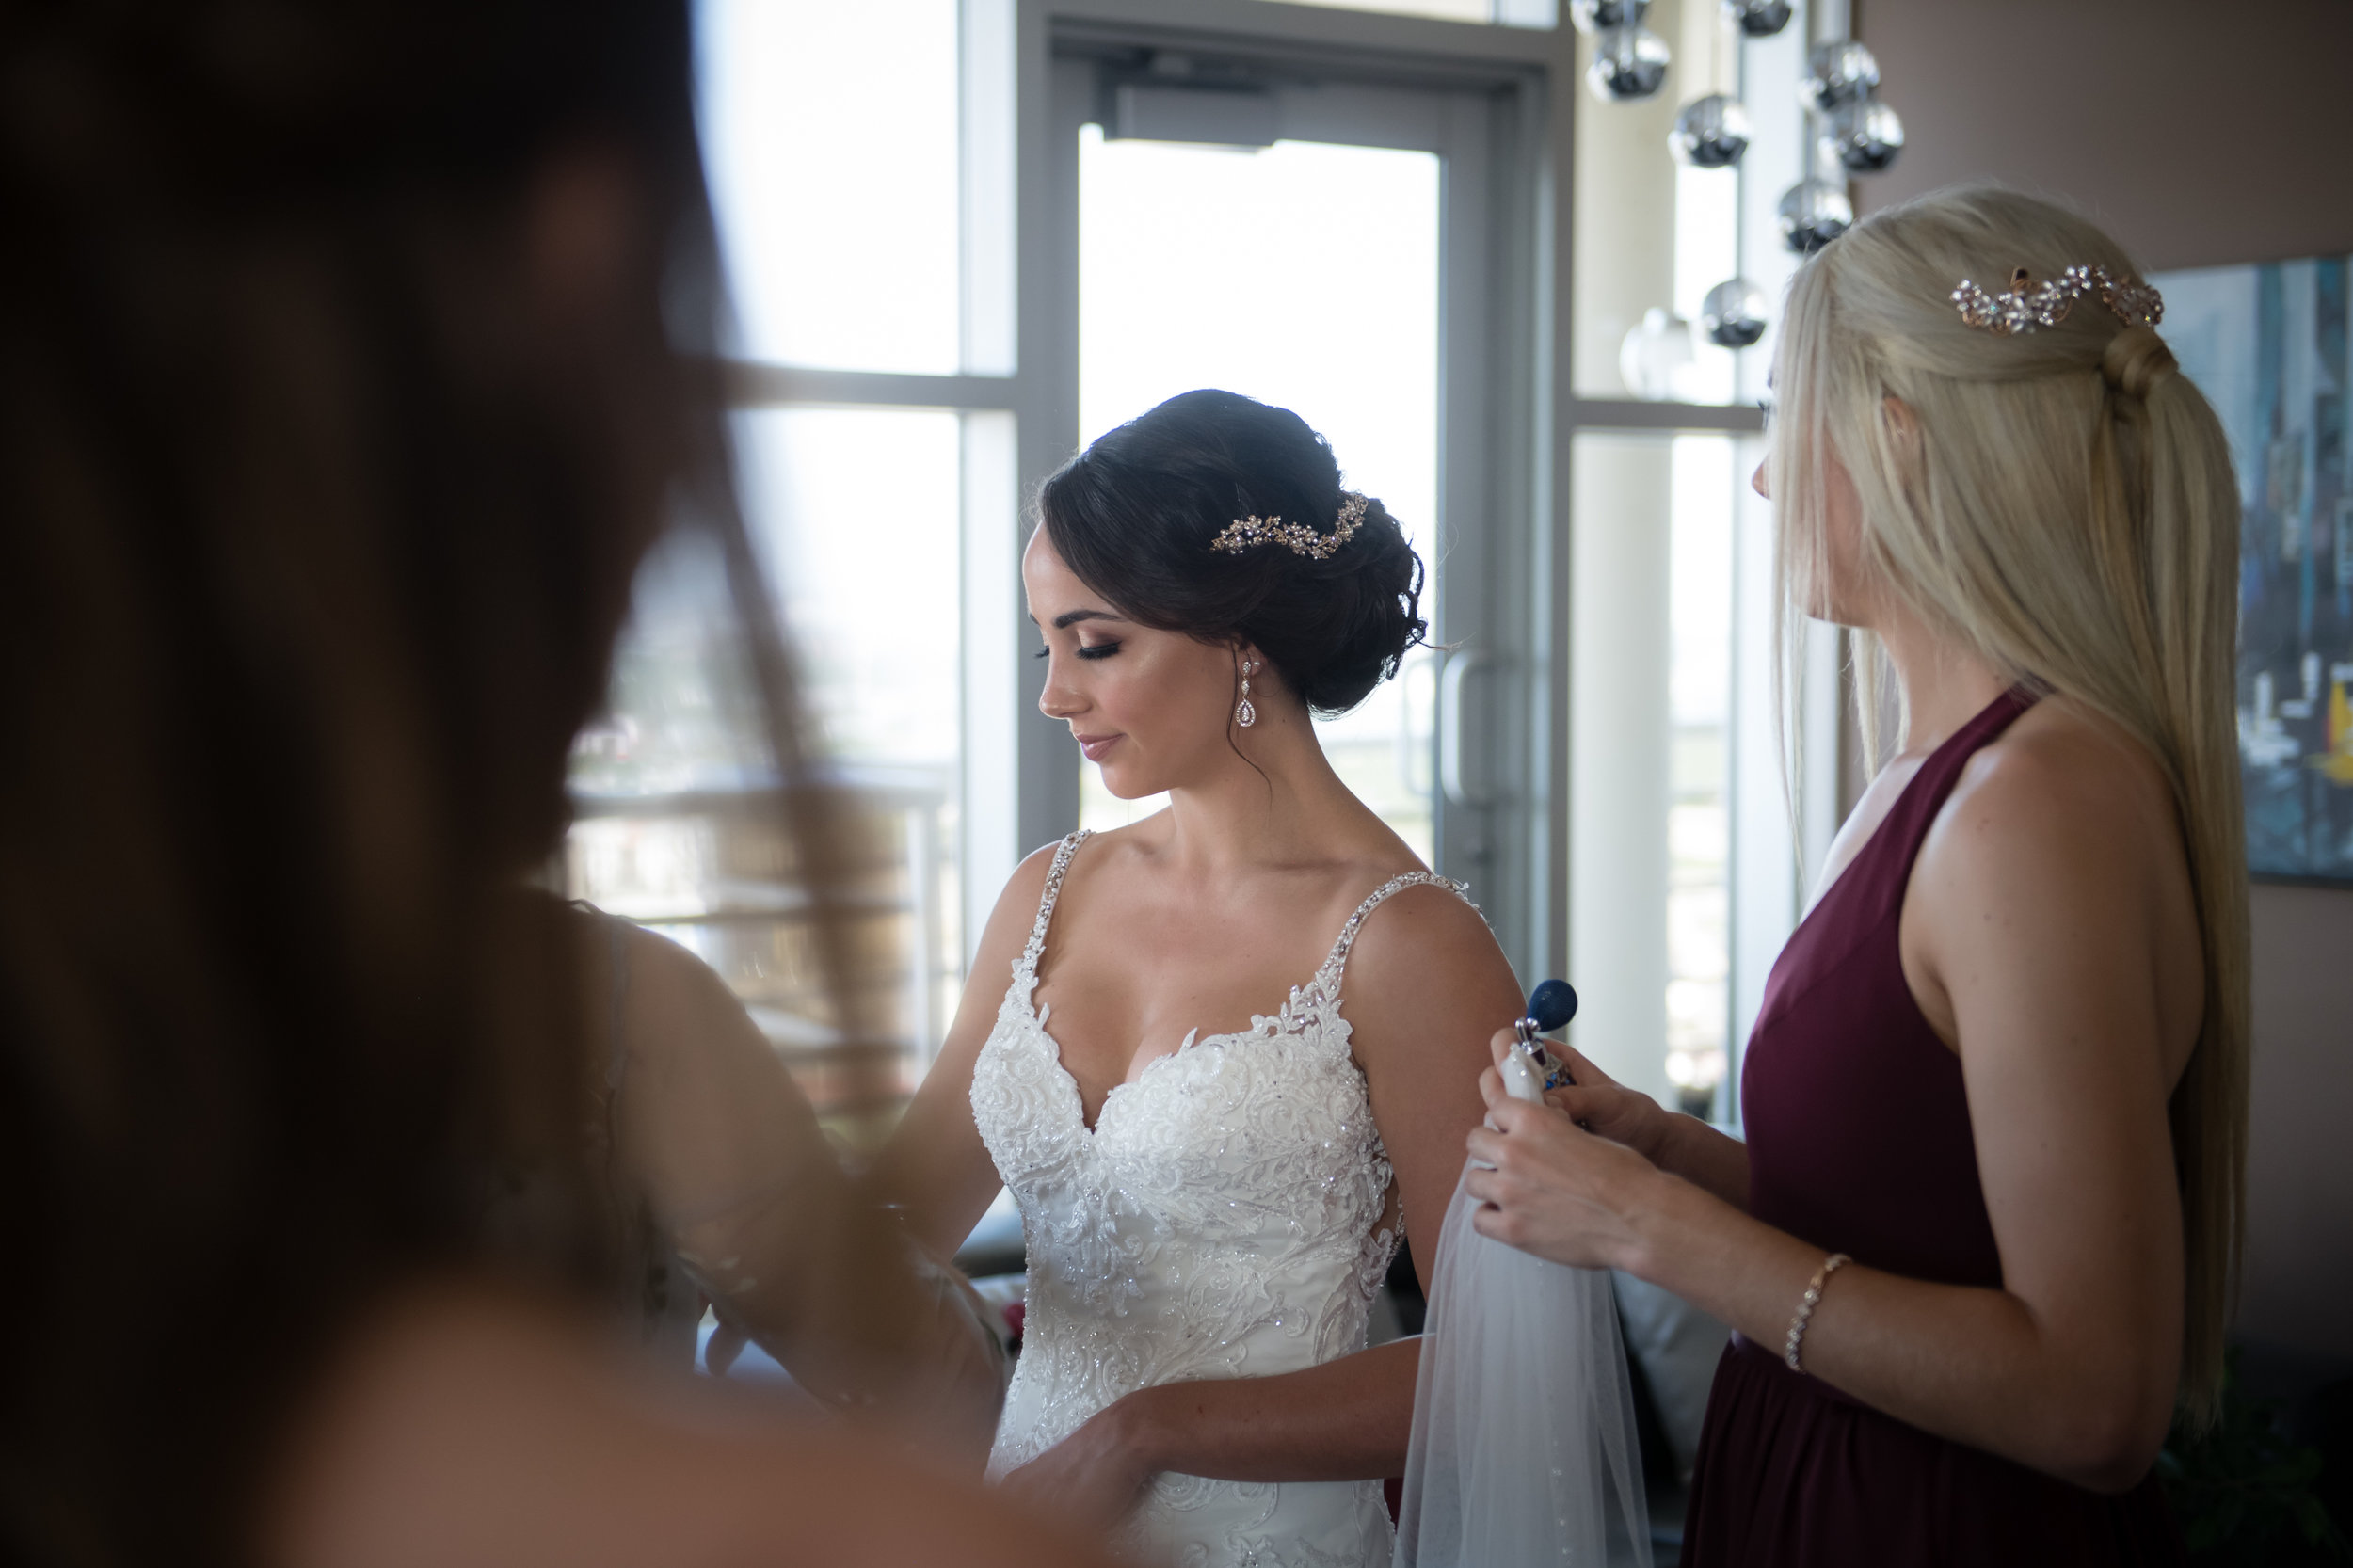 Laura_Danny_Wedding_Sneak_Peek_020.jpg